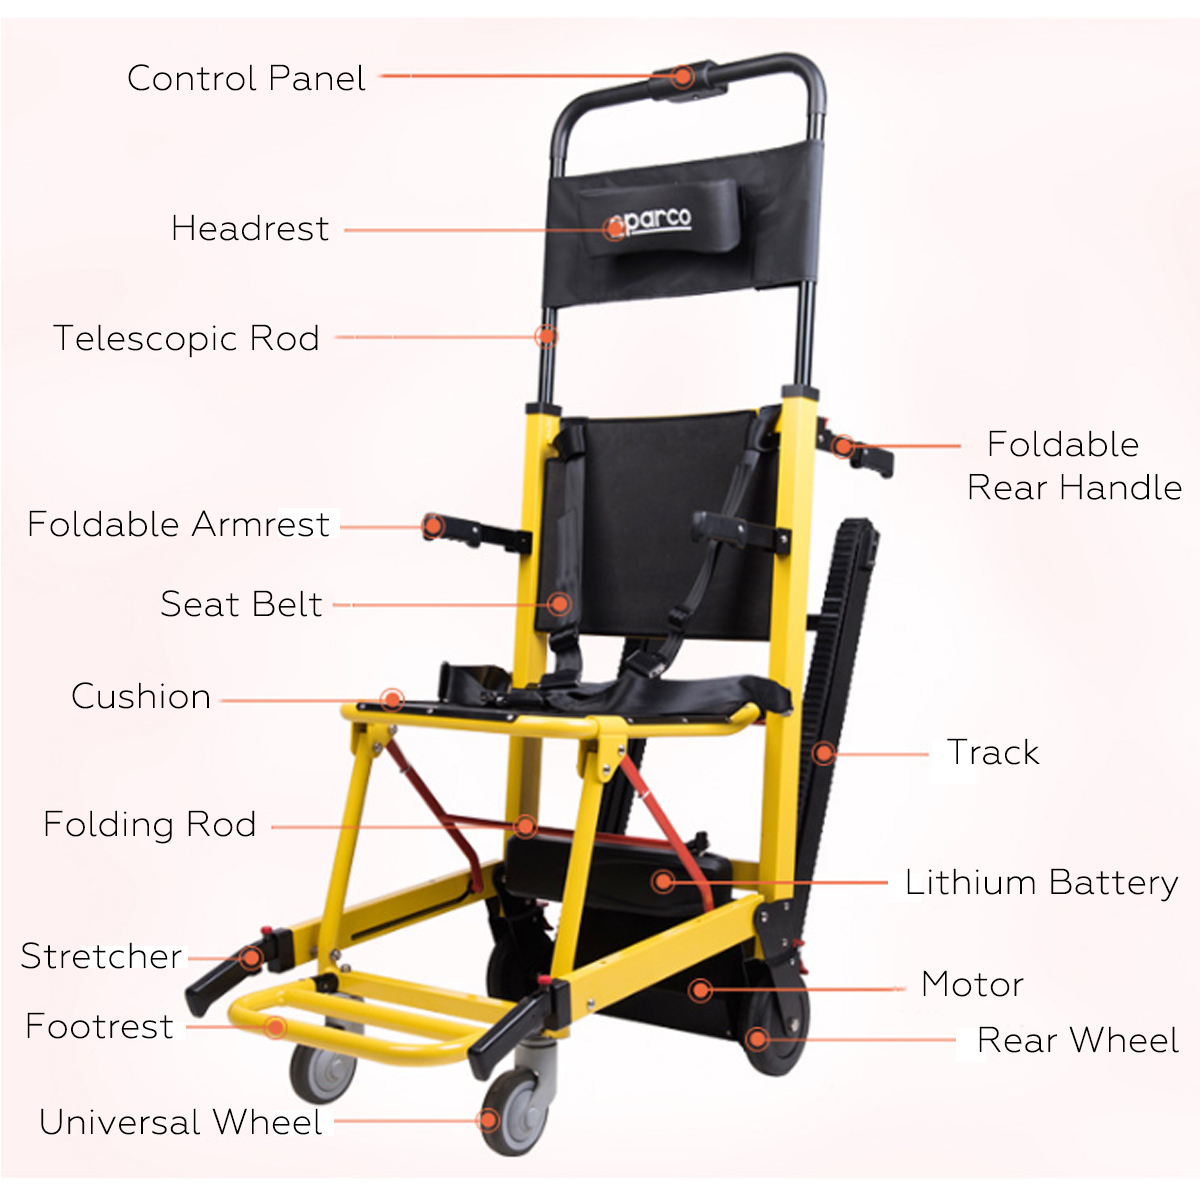 Portable Chair Lift Portable Stair Lifting Motorized Climbing Wheelchair Stair